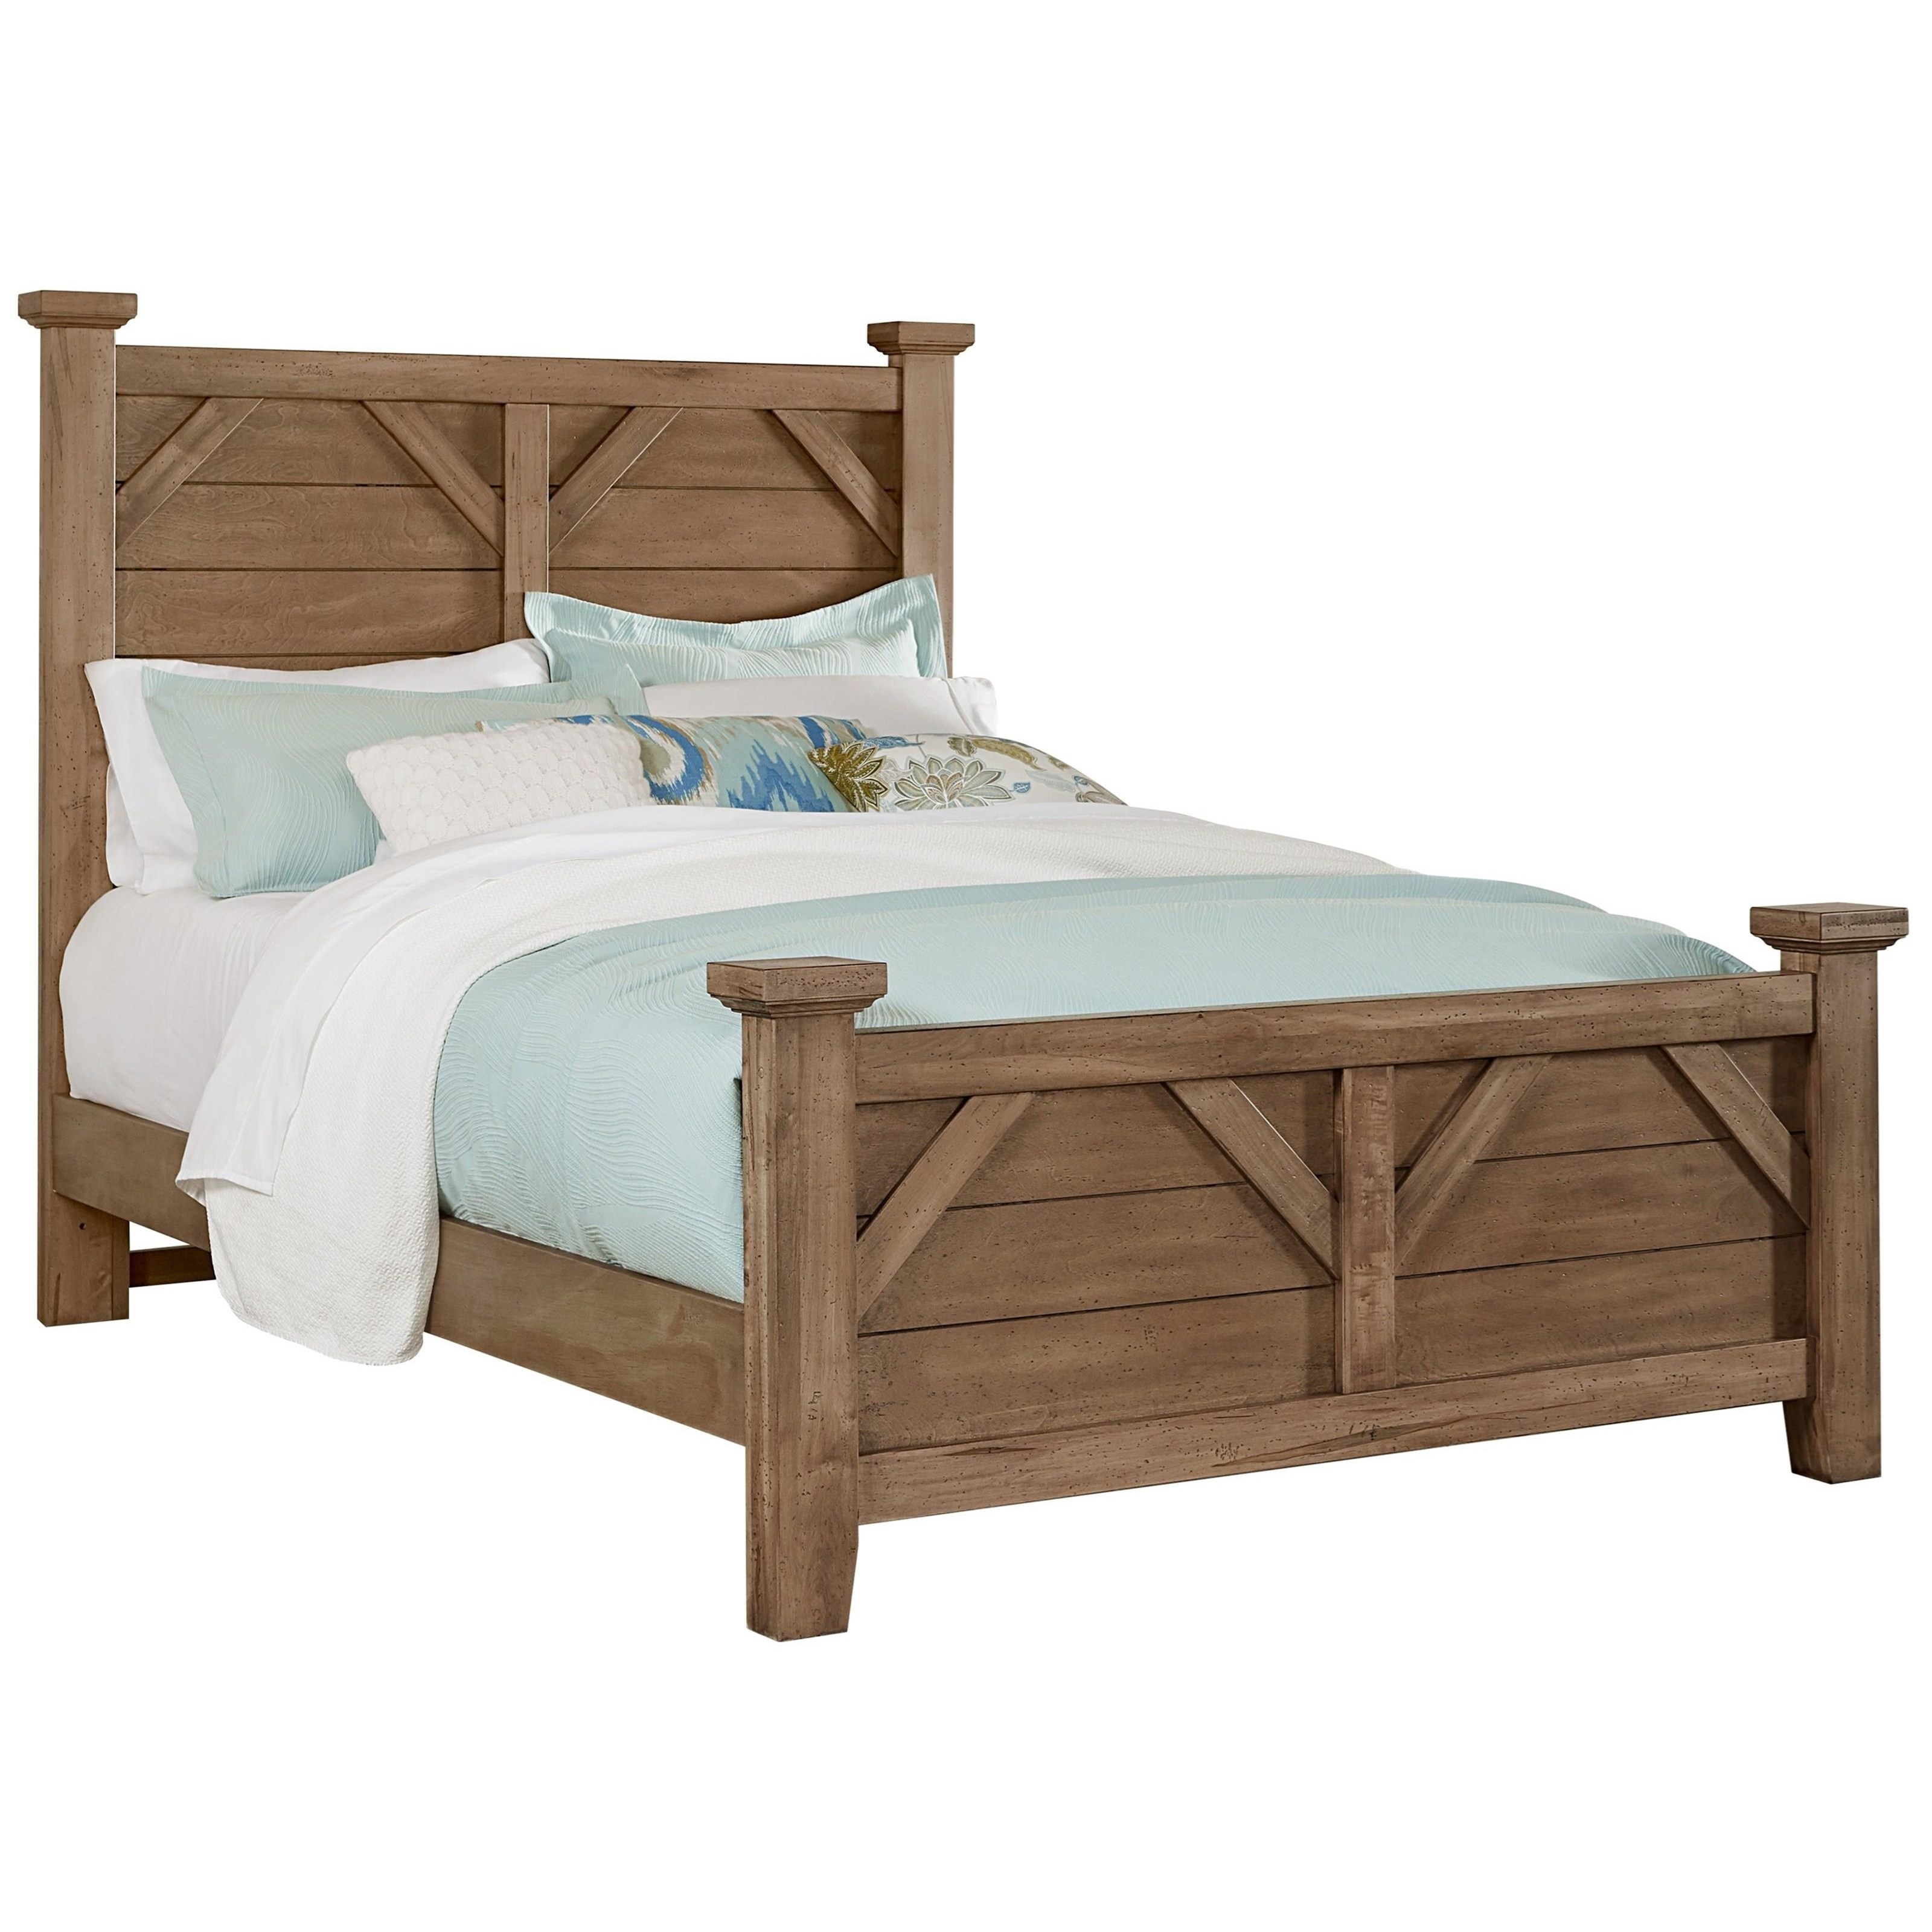 Simone King Plank Bed by Vaughan-Bassett at Crowley Furniture & Mattress